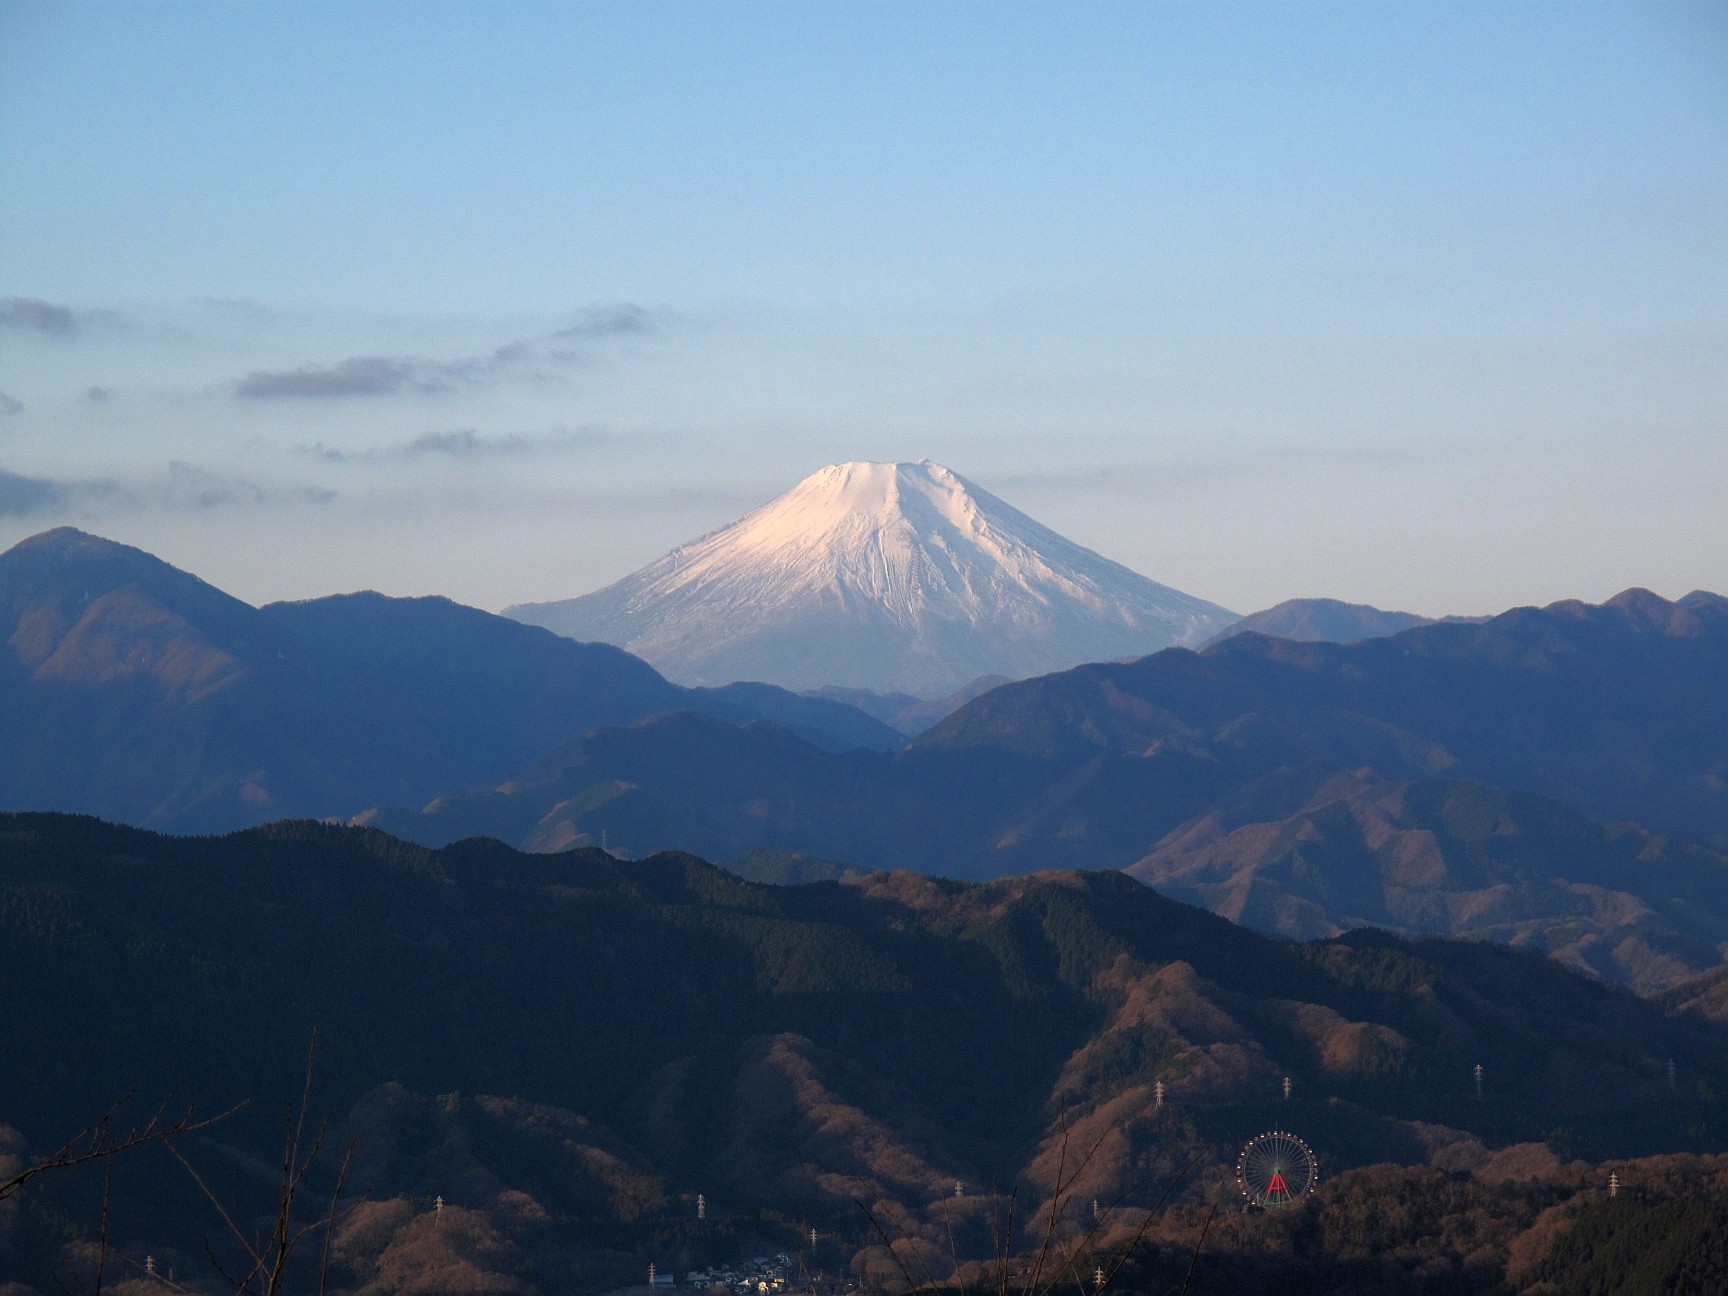 Mount Fuji as seen from the Summit of Takaosan